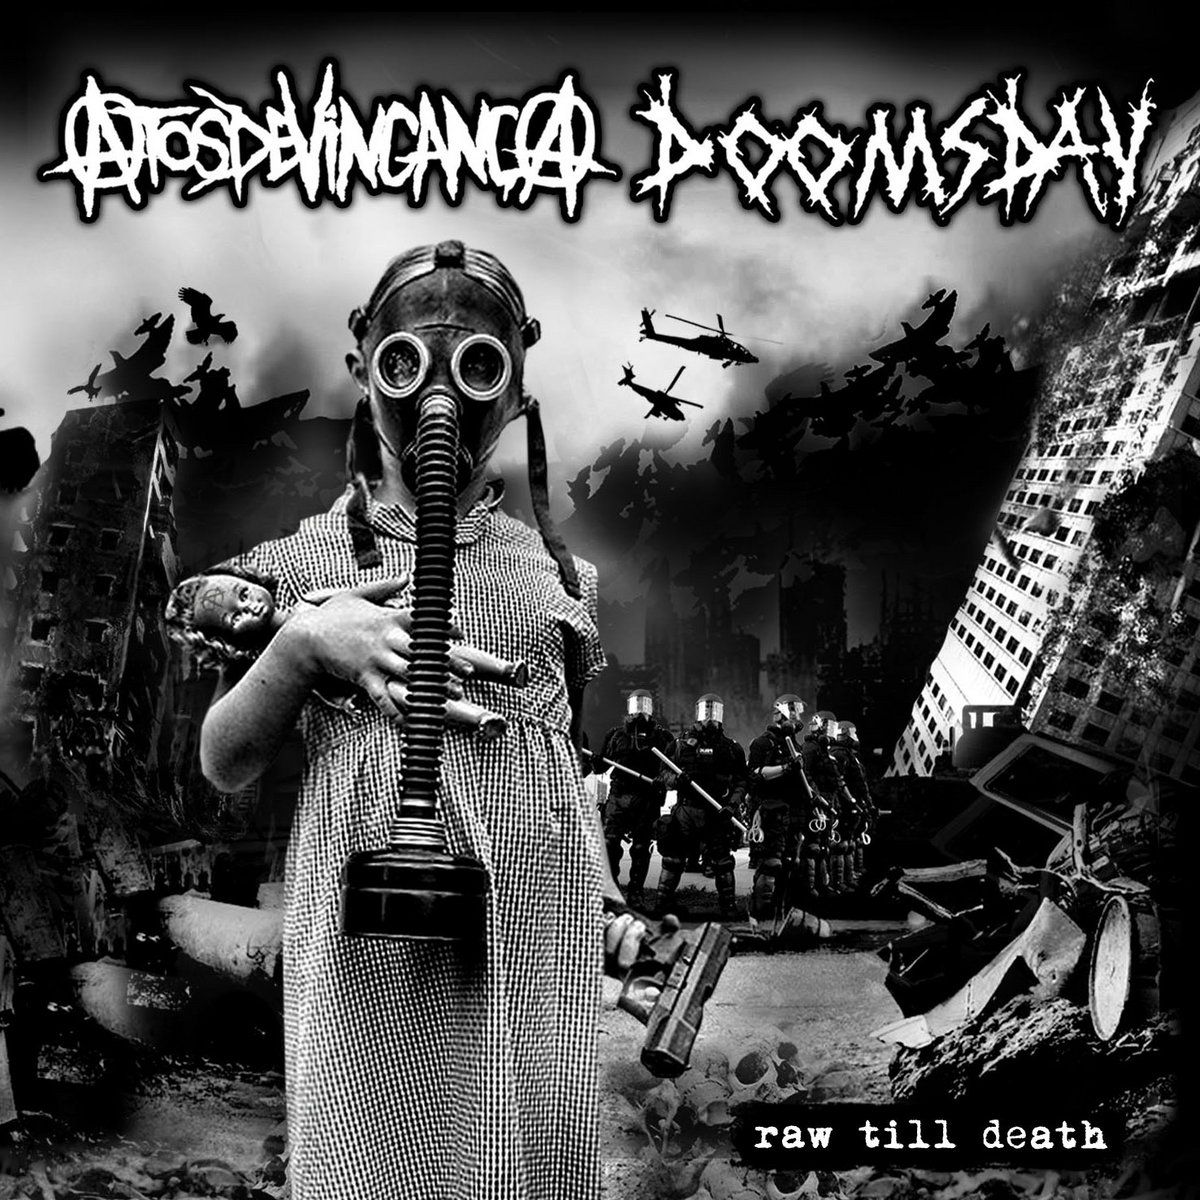 Atos de Vingança, doomsday, raw till death